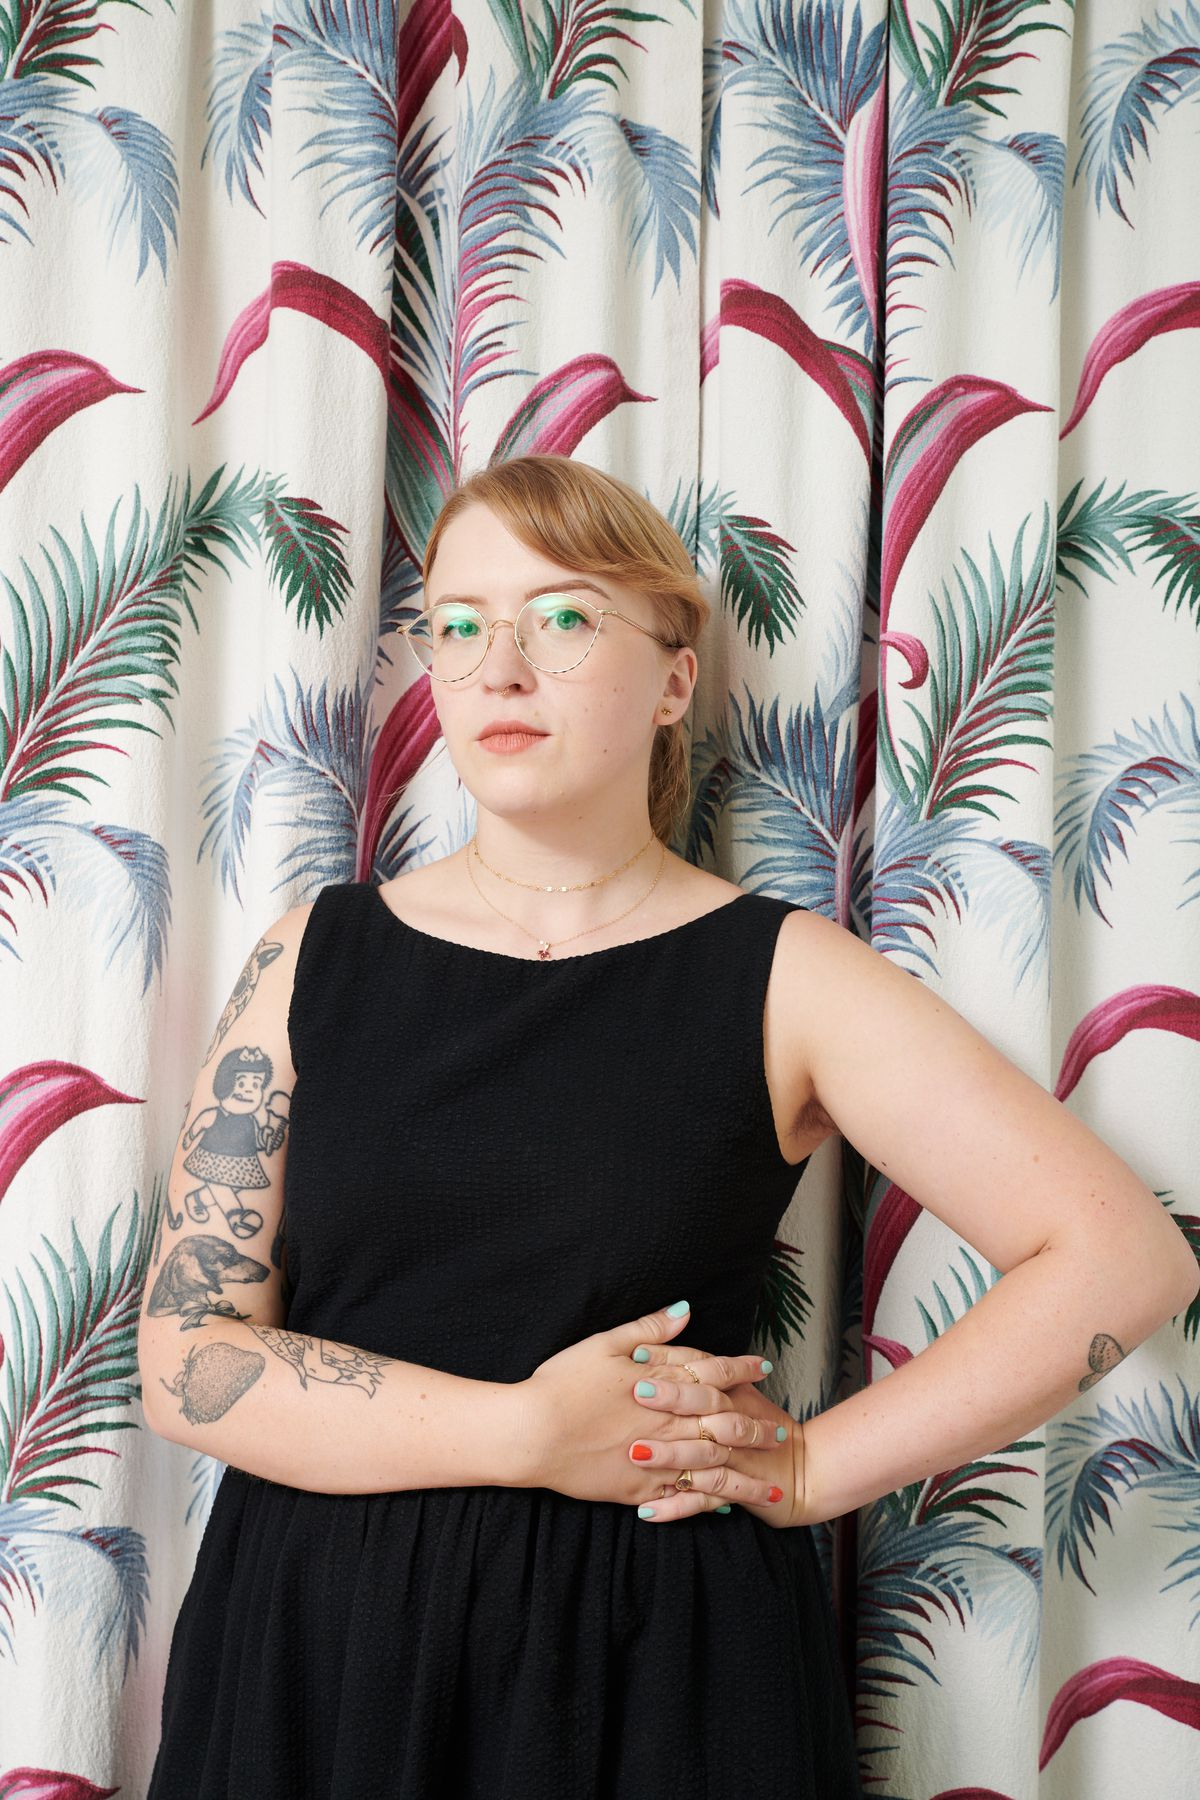 Tuesday Bassen wearing a black sleeveless dress in front of a tropical-themed curtain